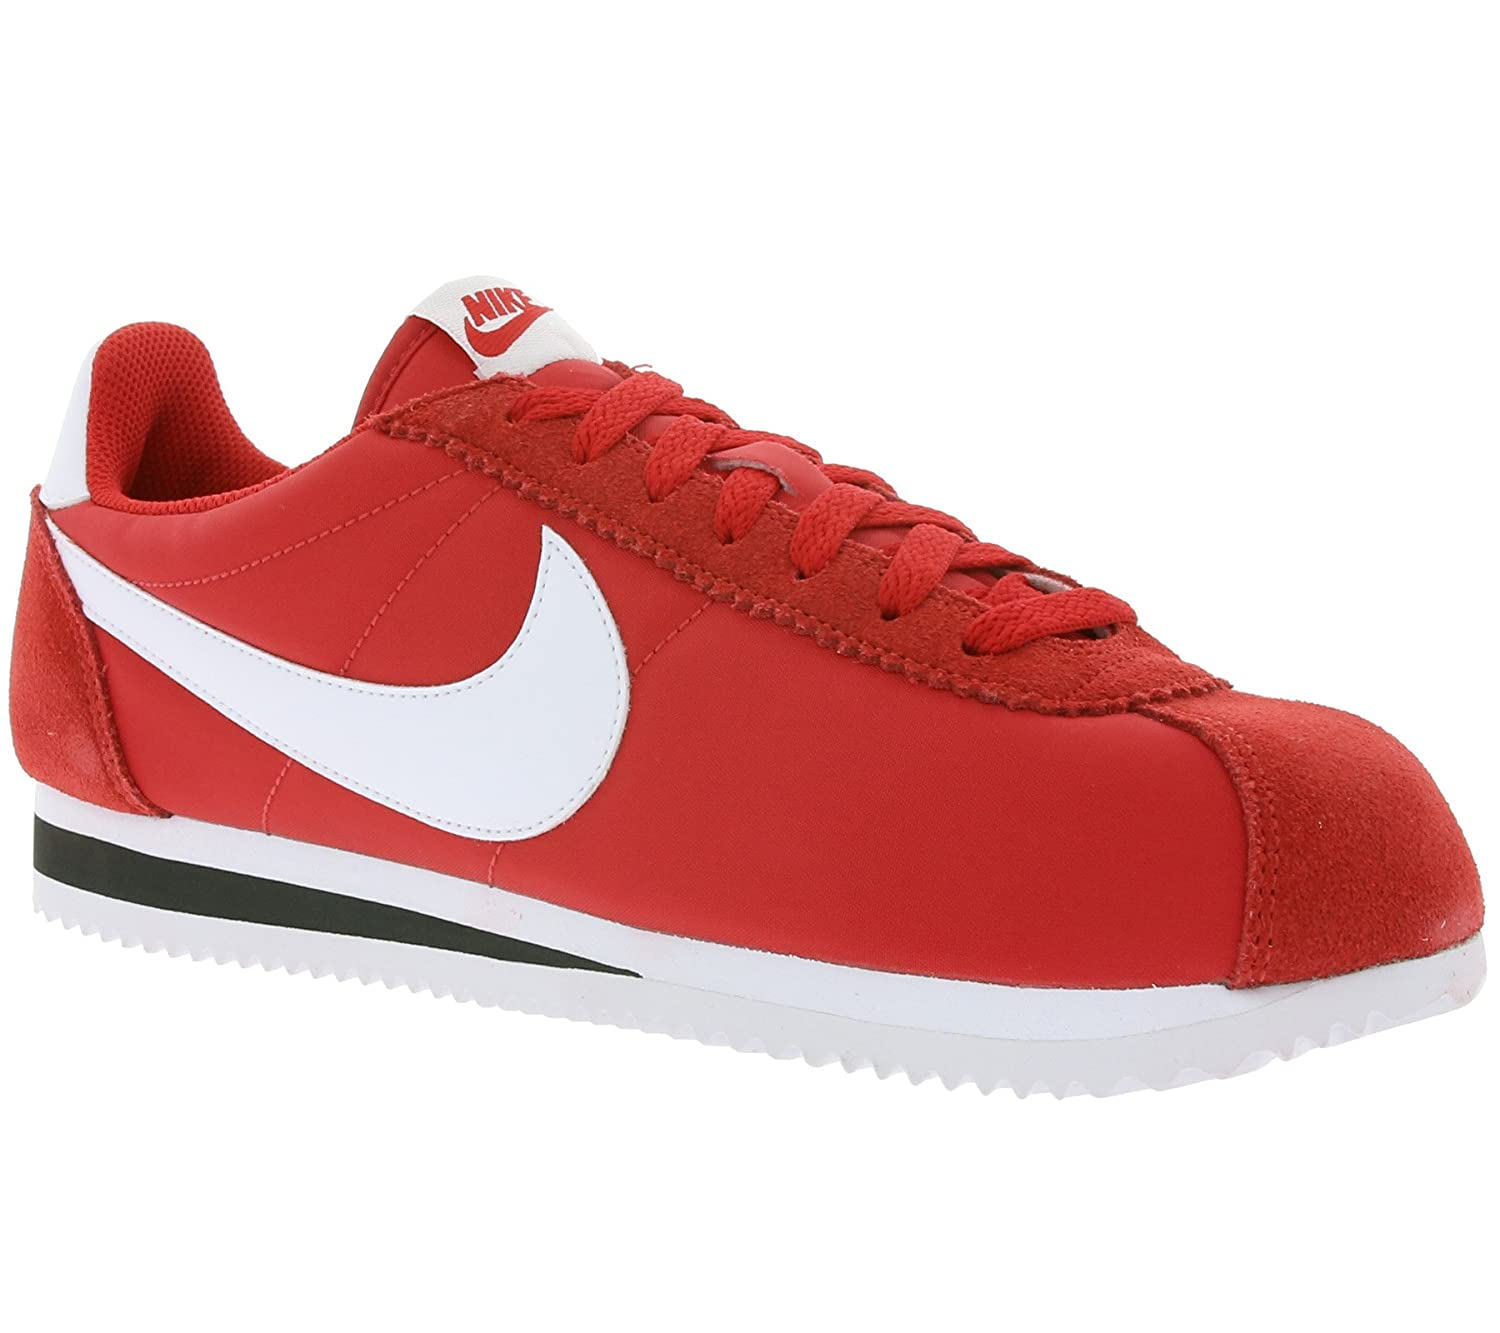 the best attitude 59bd5 1449a NIKE Classic Cortez Nylon Men s Sneaker Red 807472 600  Amazon.co.uk  Shoes    Bags